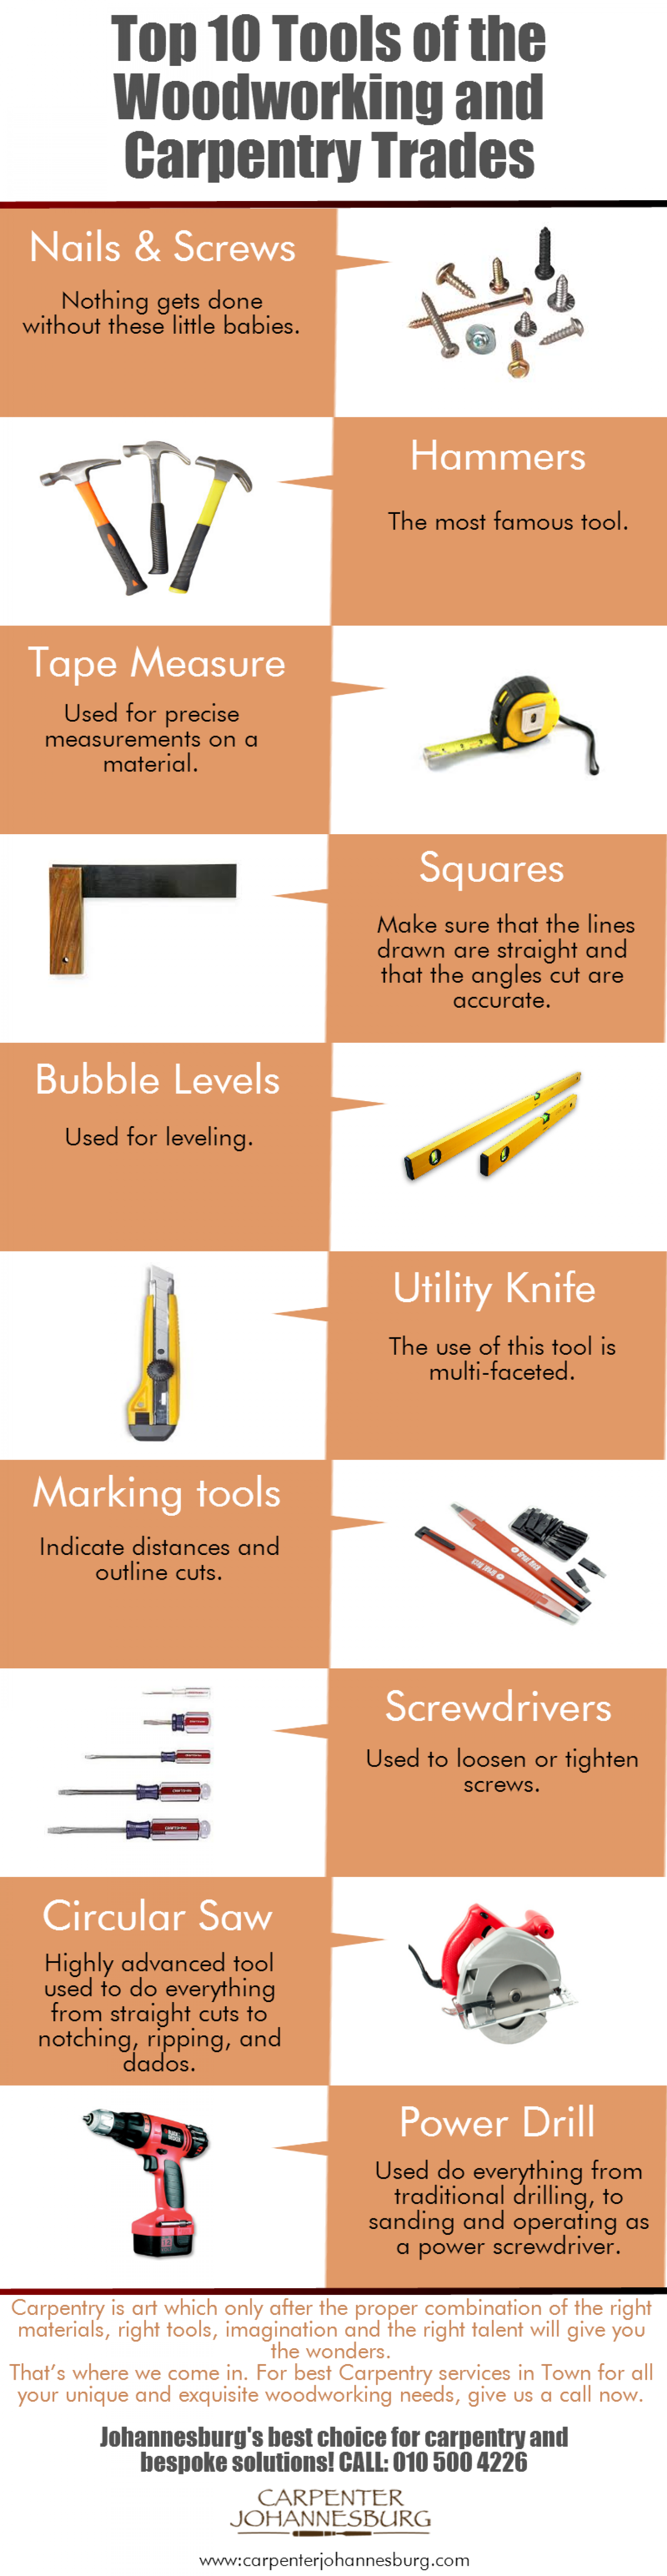 Top 10 Tools of the Woodworking and Carpentry Trades Infographic